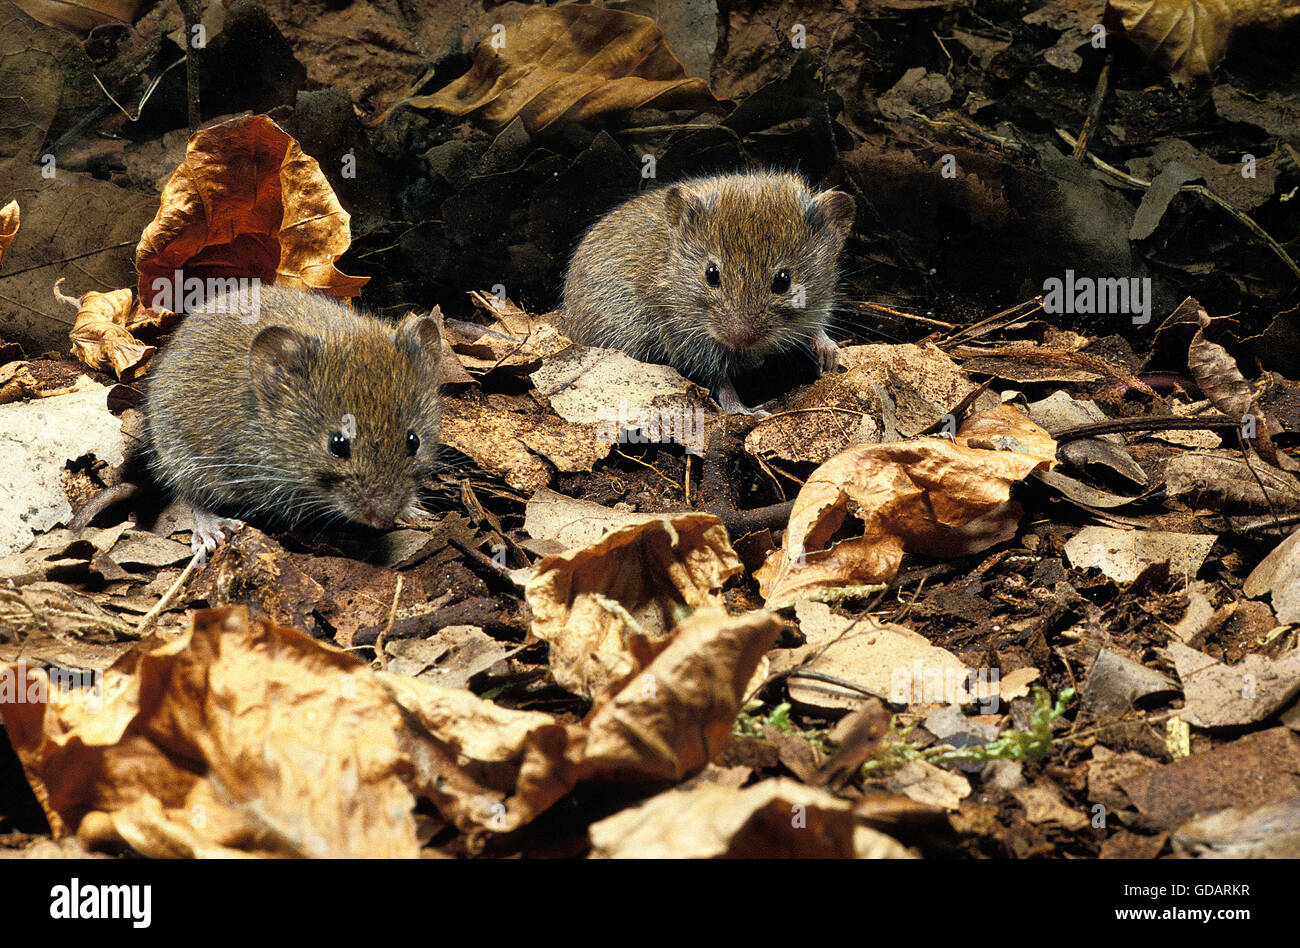 Bank Vole, clethrionomys glareolus, Adults on Fallen Leaves - Stock Image